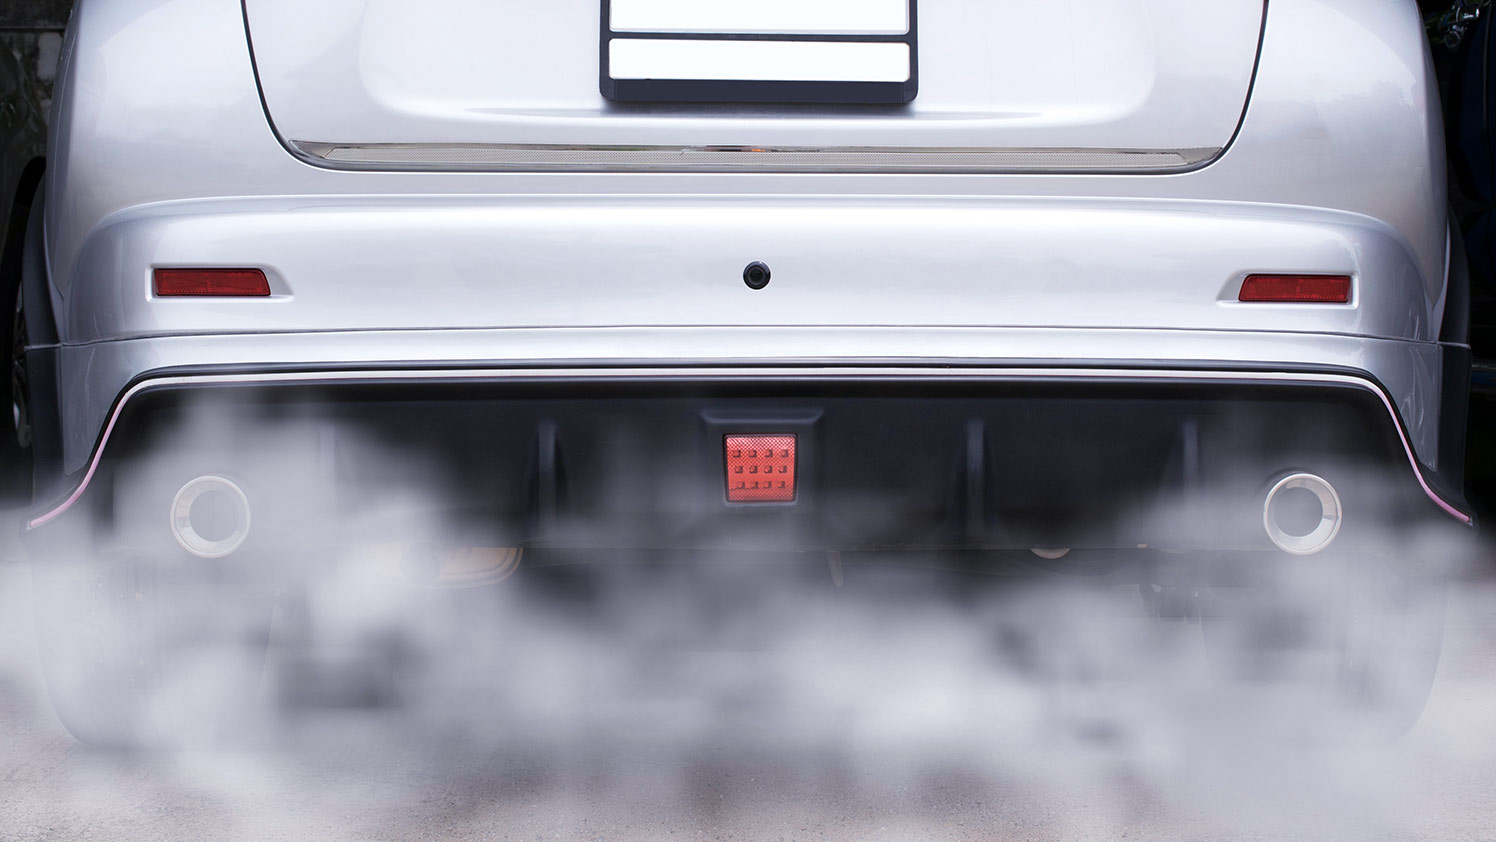 Rear end of a vehicle with dual exhaust pipes